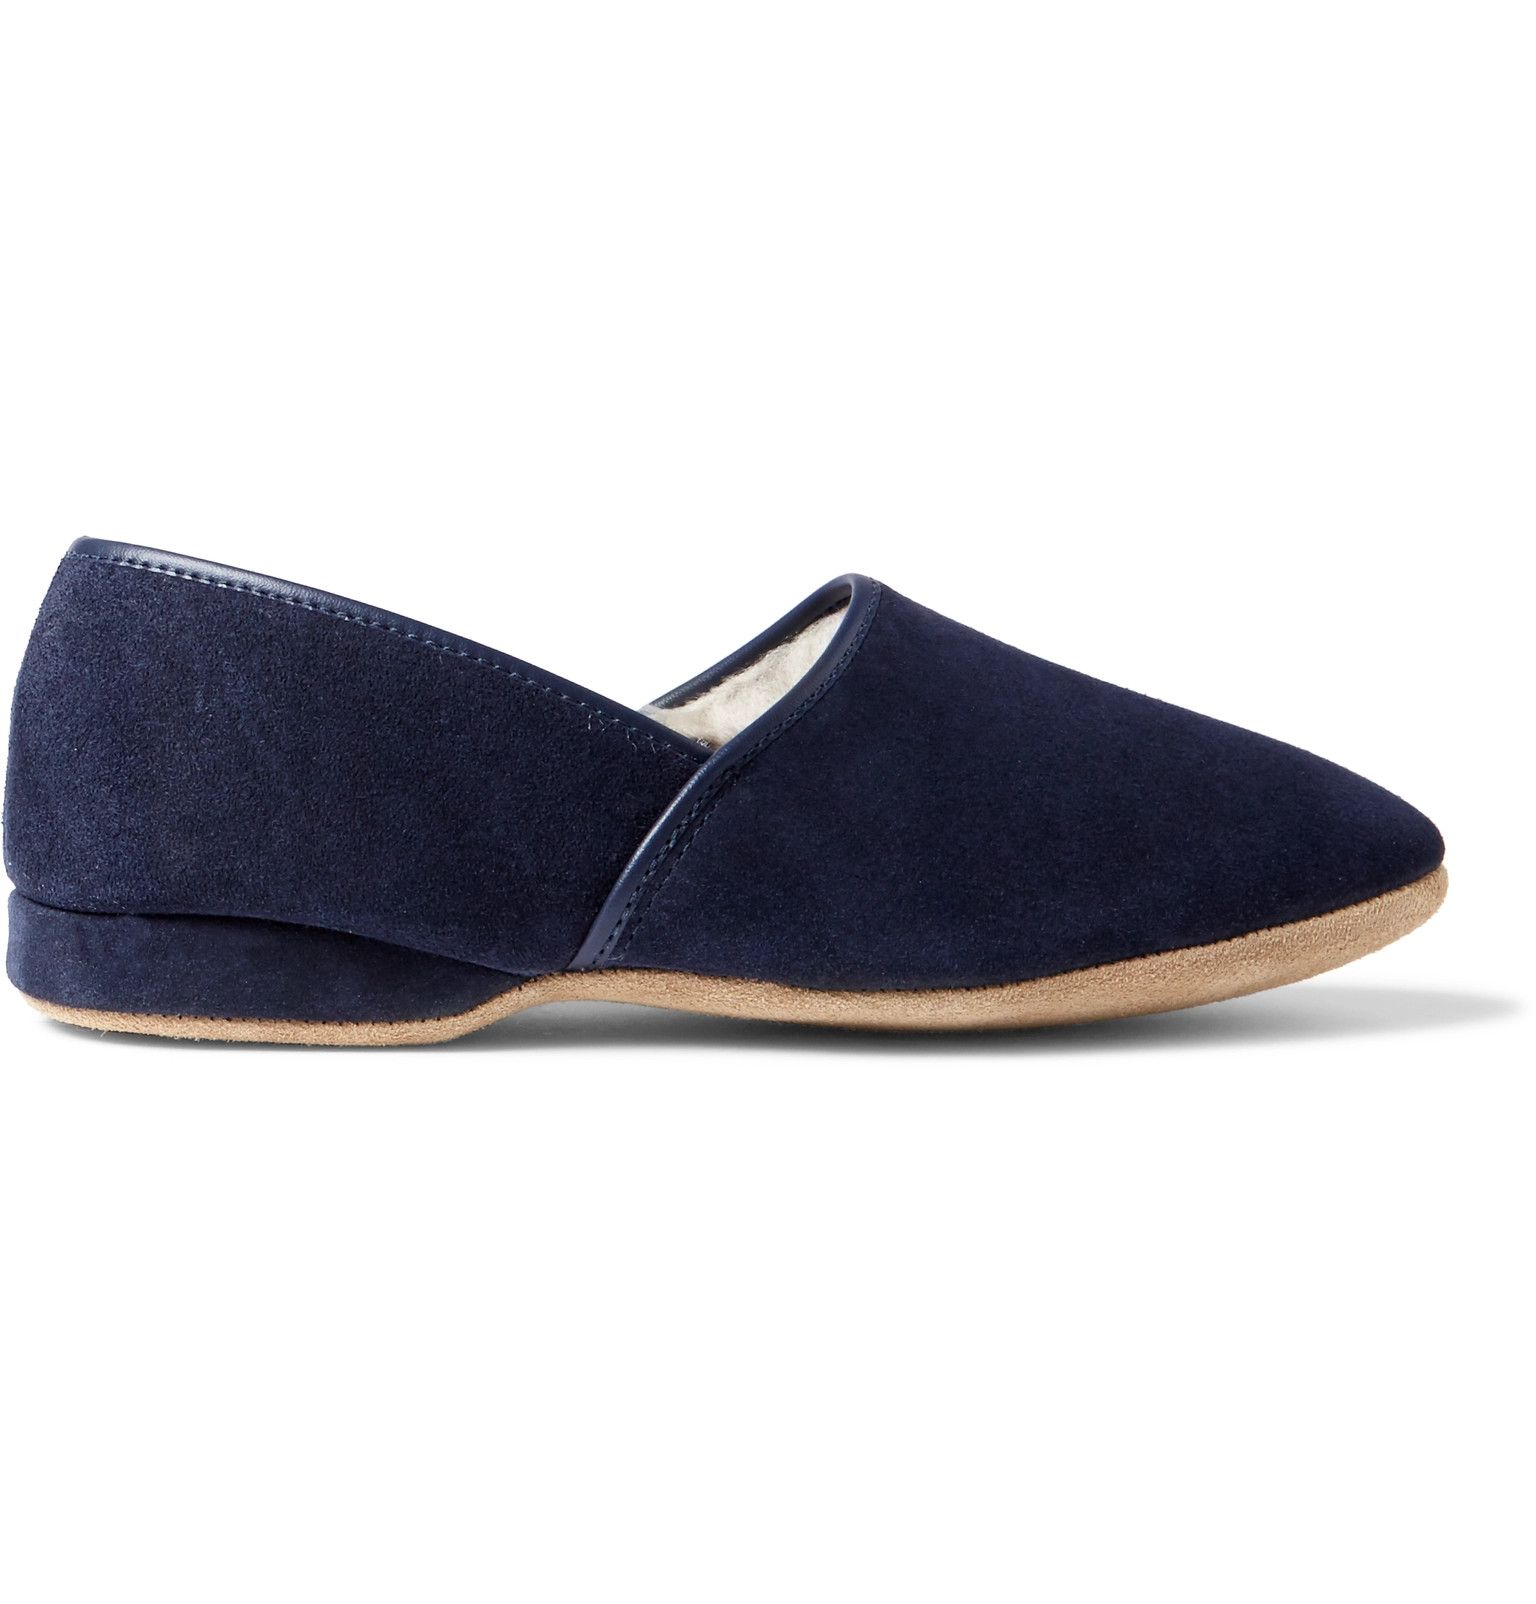 889a4ec7e05d Derek Rose - Crawford Shearling-Lined Suede Slippers